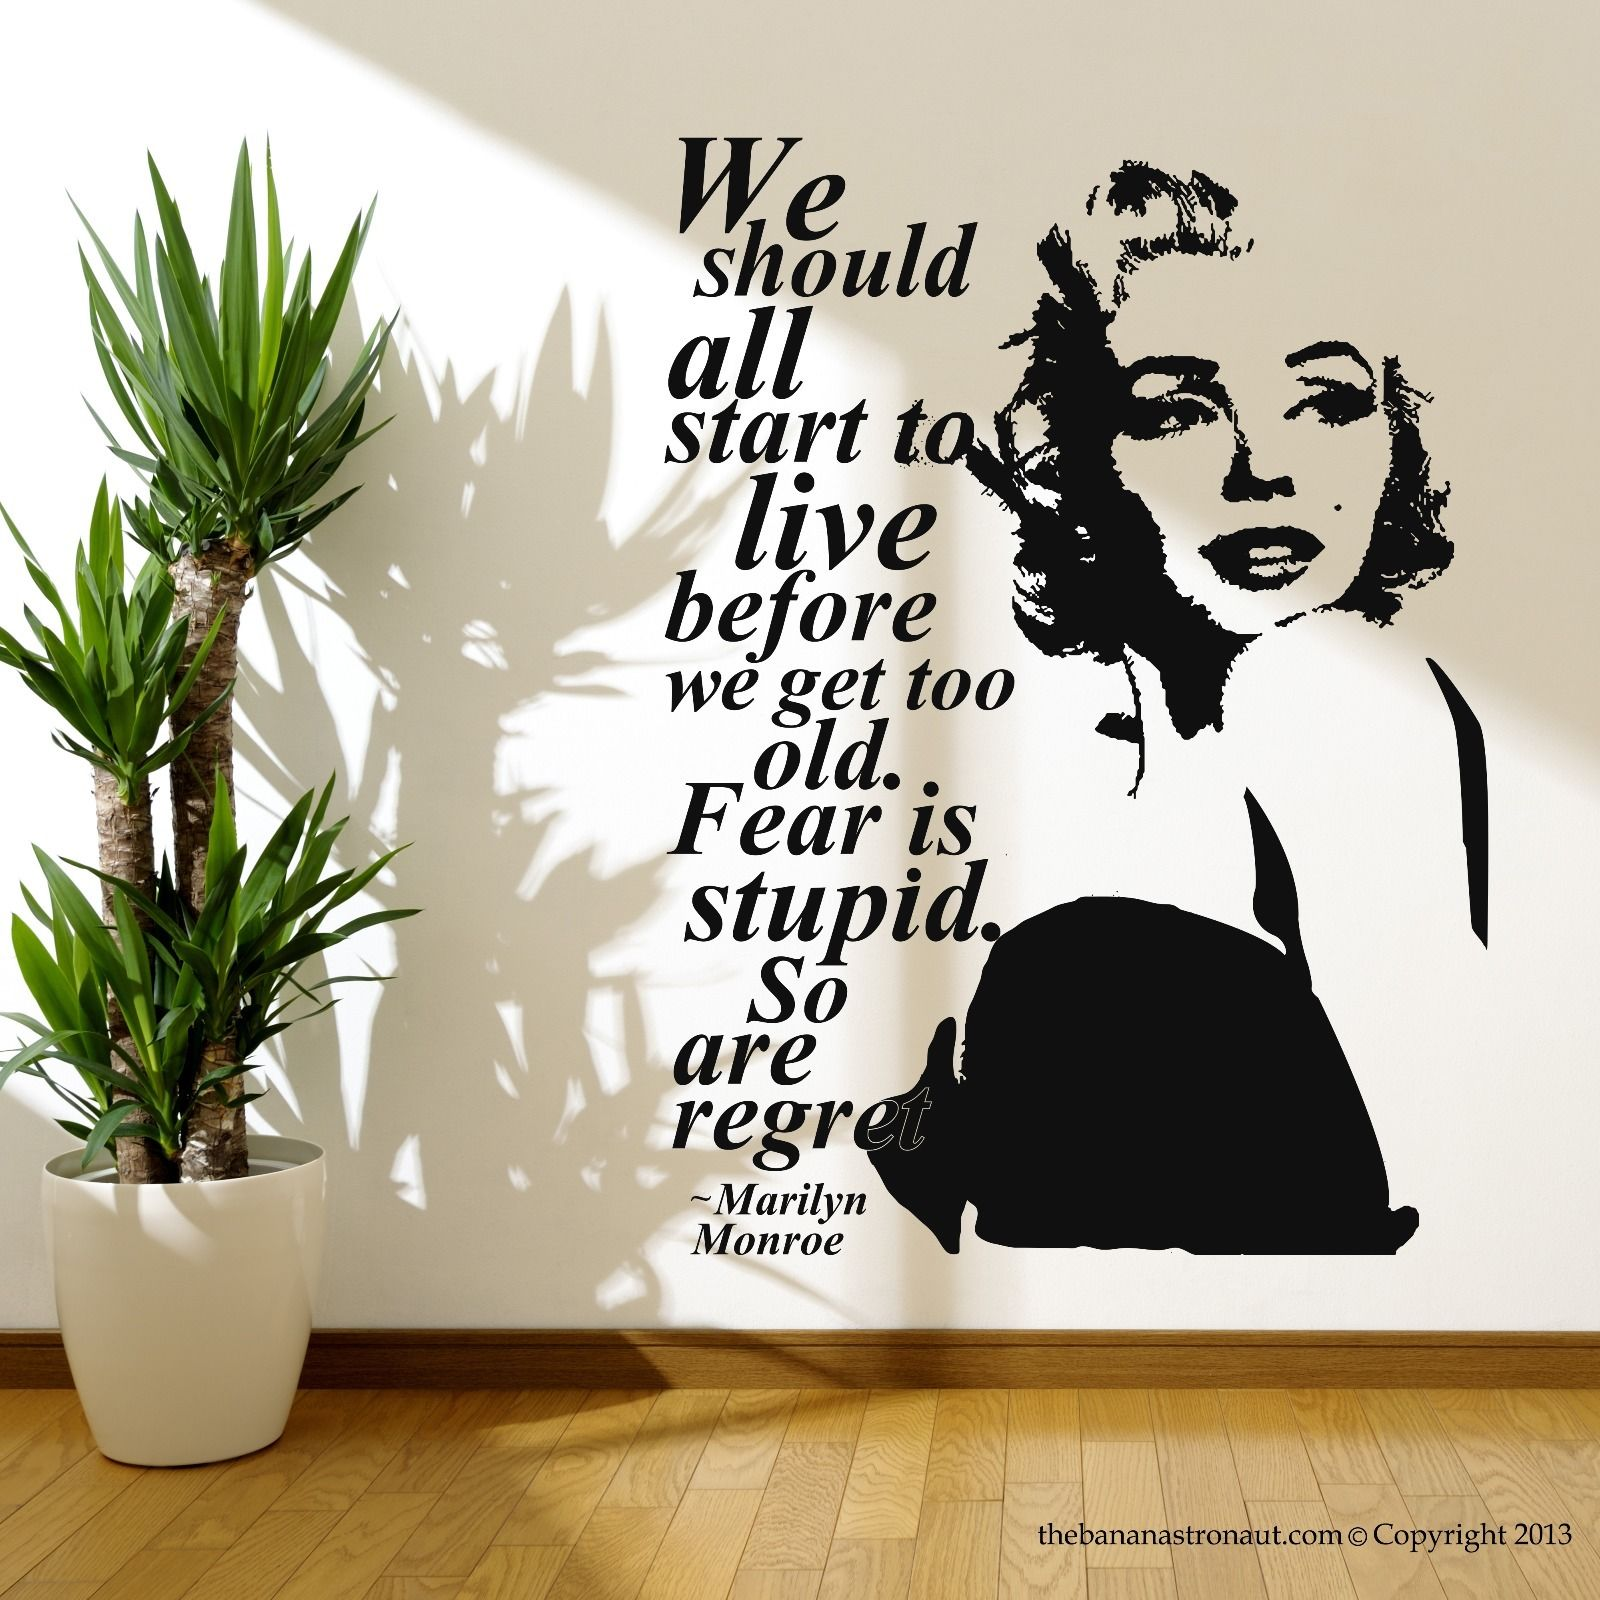 Marilyn Monroe Quote Regret Wall Decal Stickers Decor Easy Removable Sticker  Free Shipping In Wall Stickers From Home U0026 Garden On Aliexpress.com |  Alibaba ...